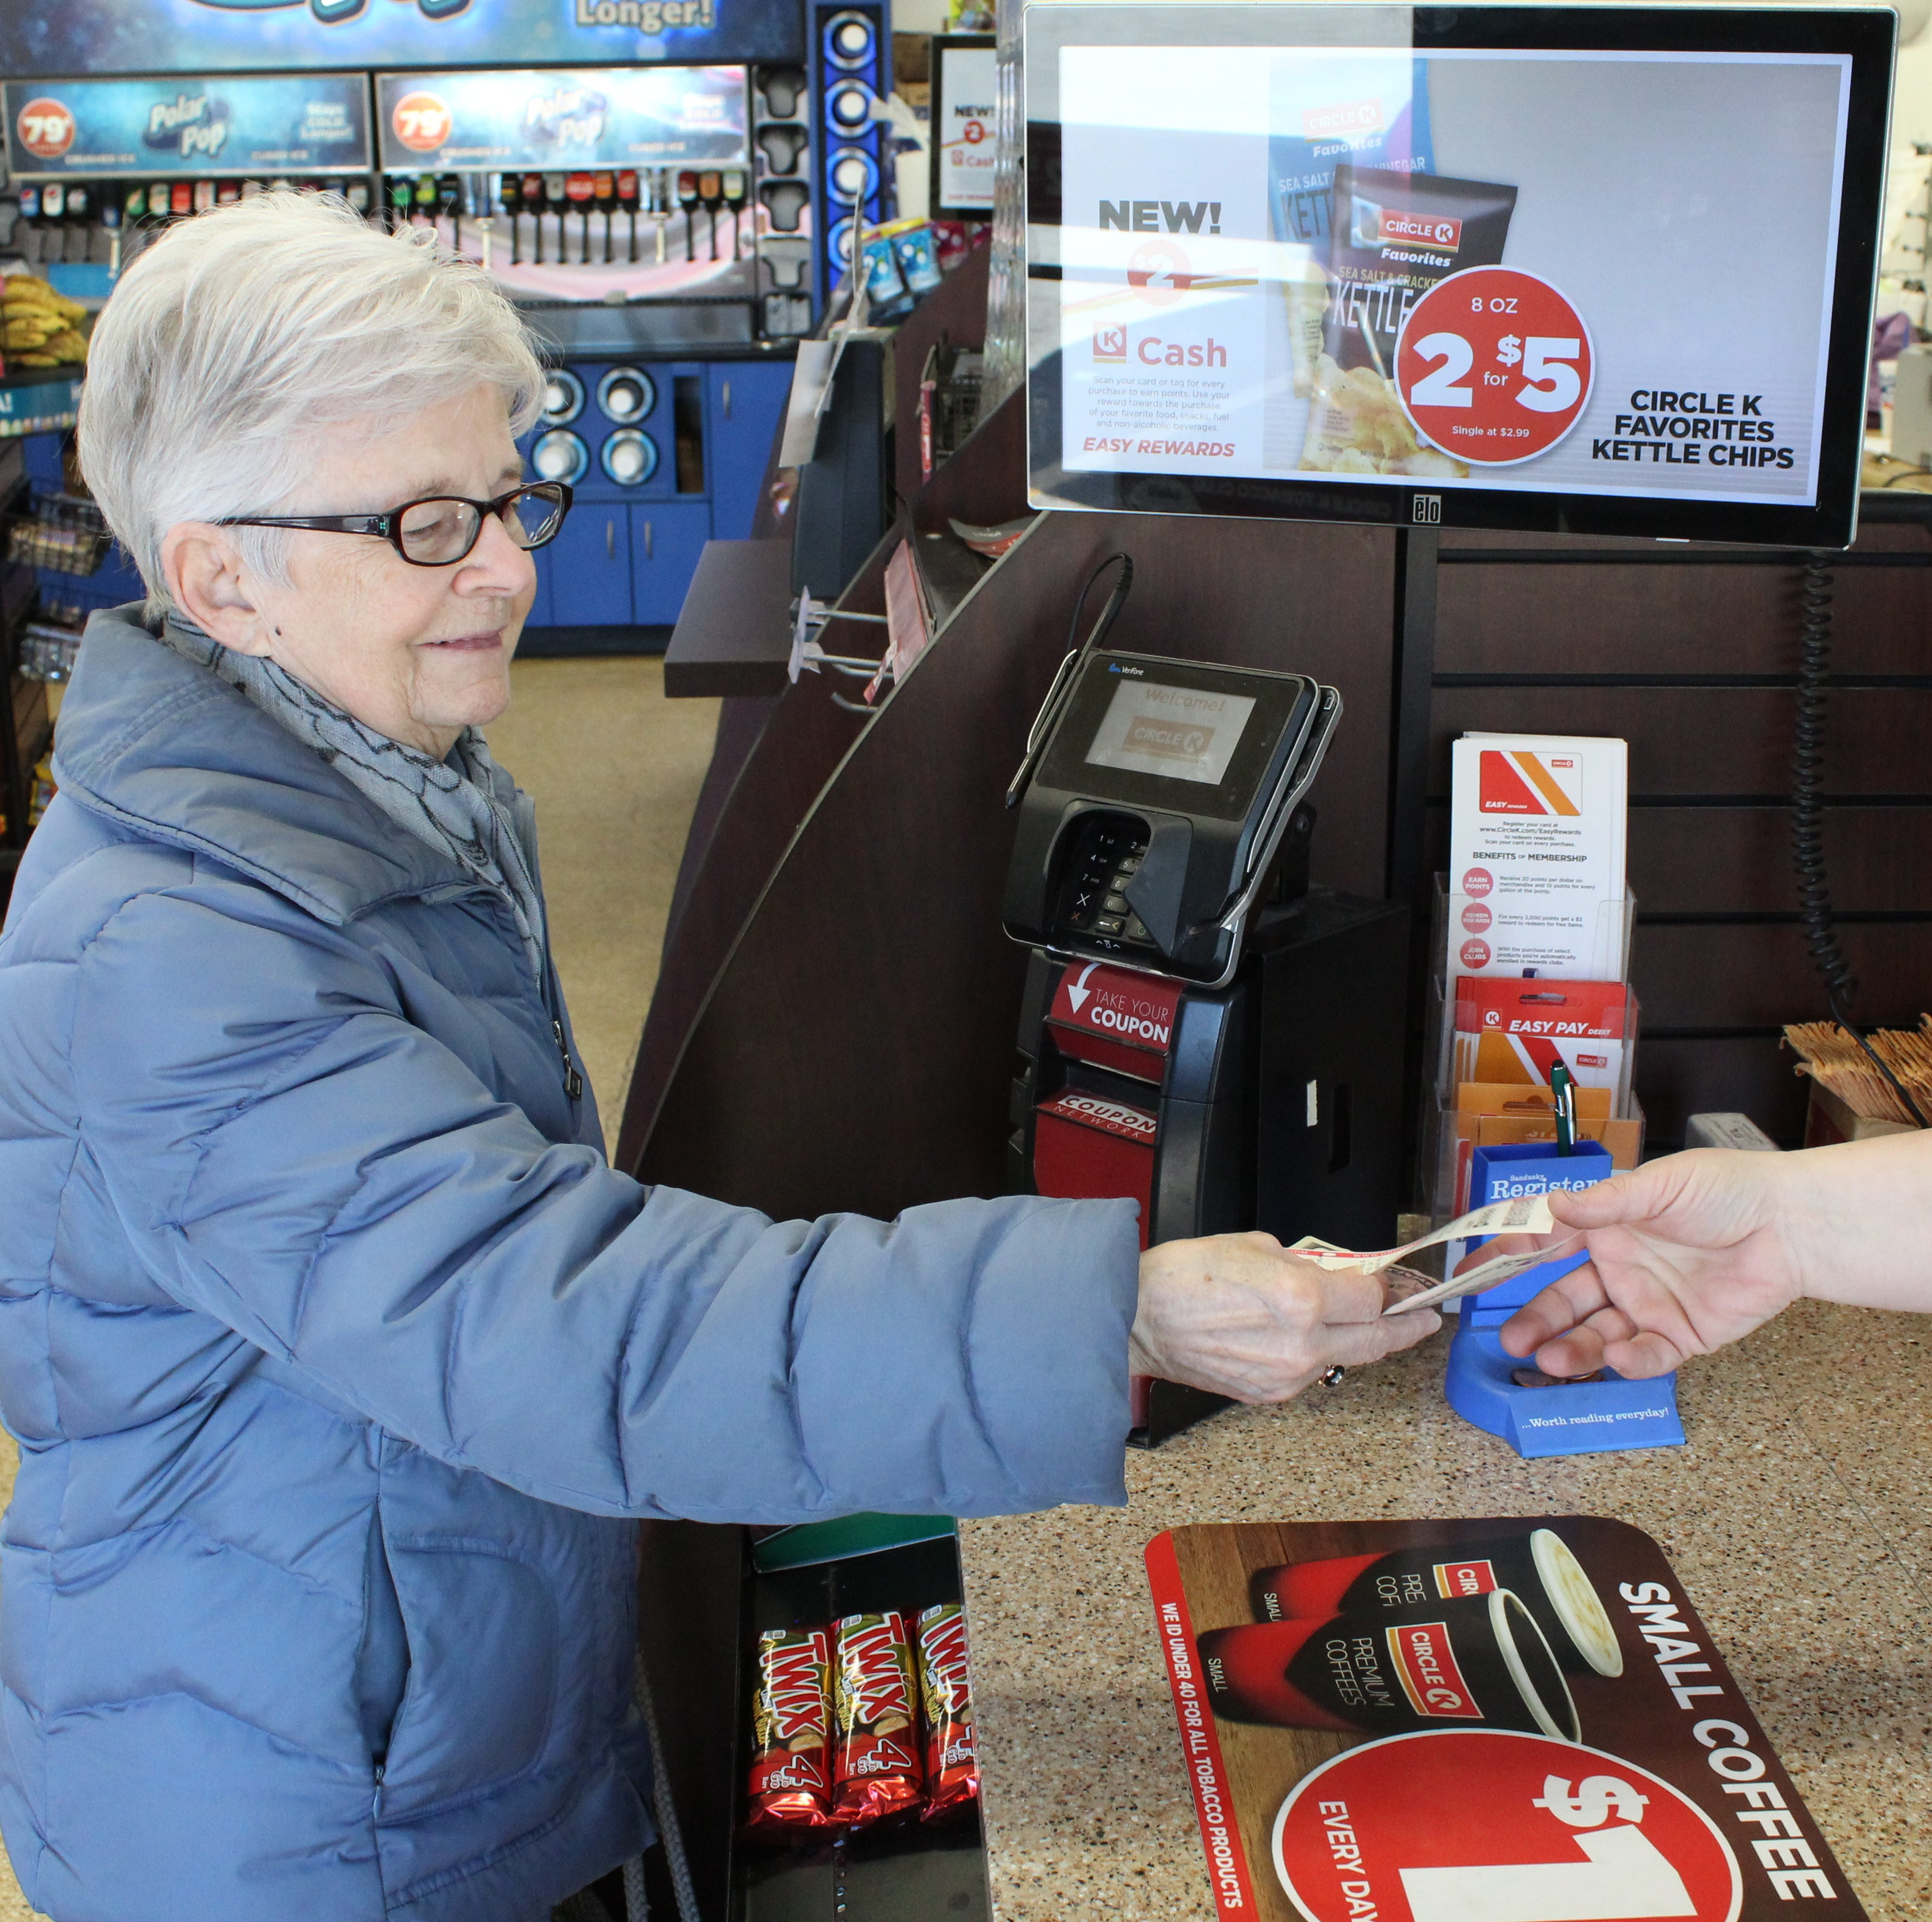 Powerball: We have a winner for $768.4 million jackpot